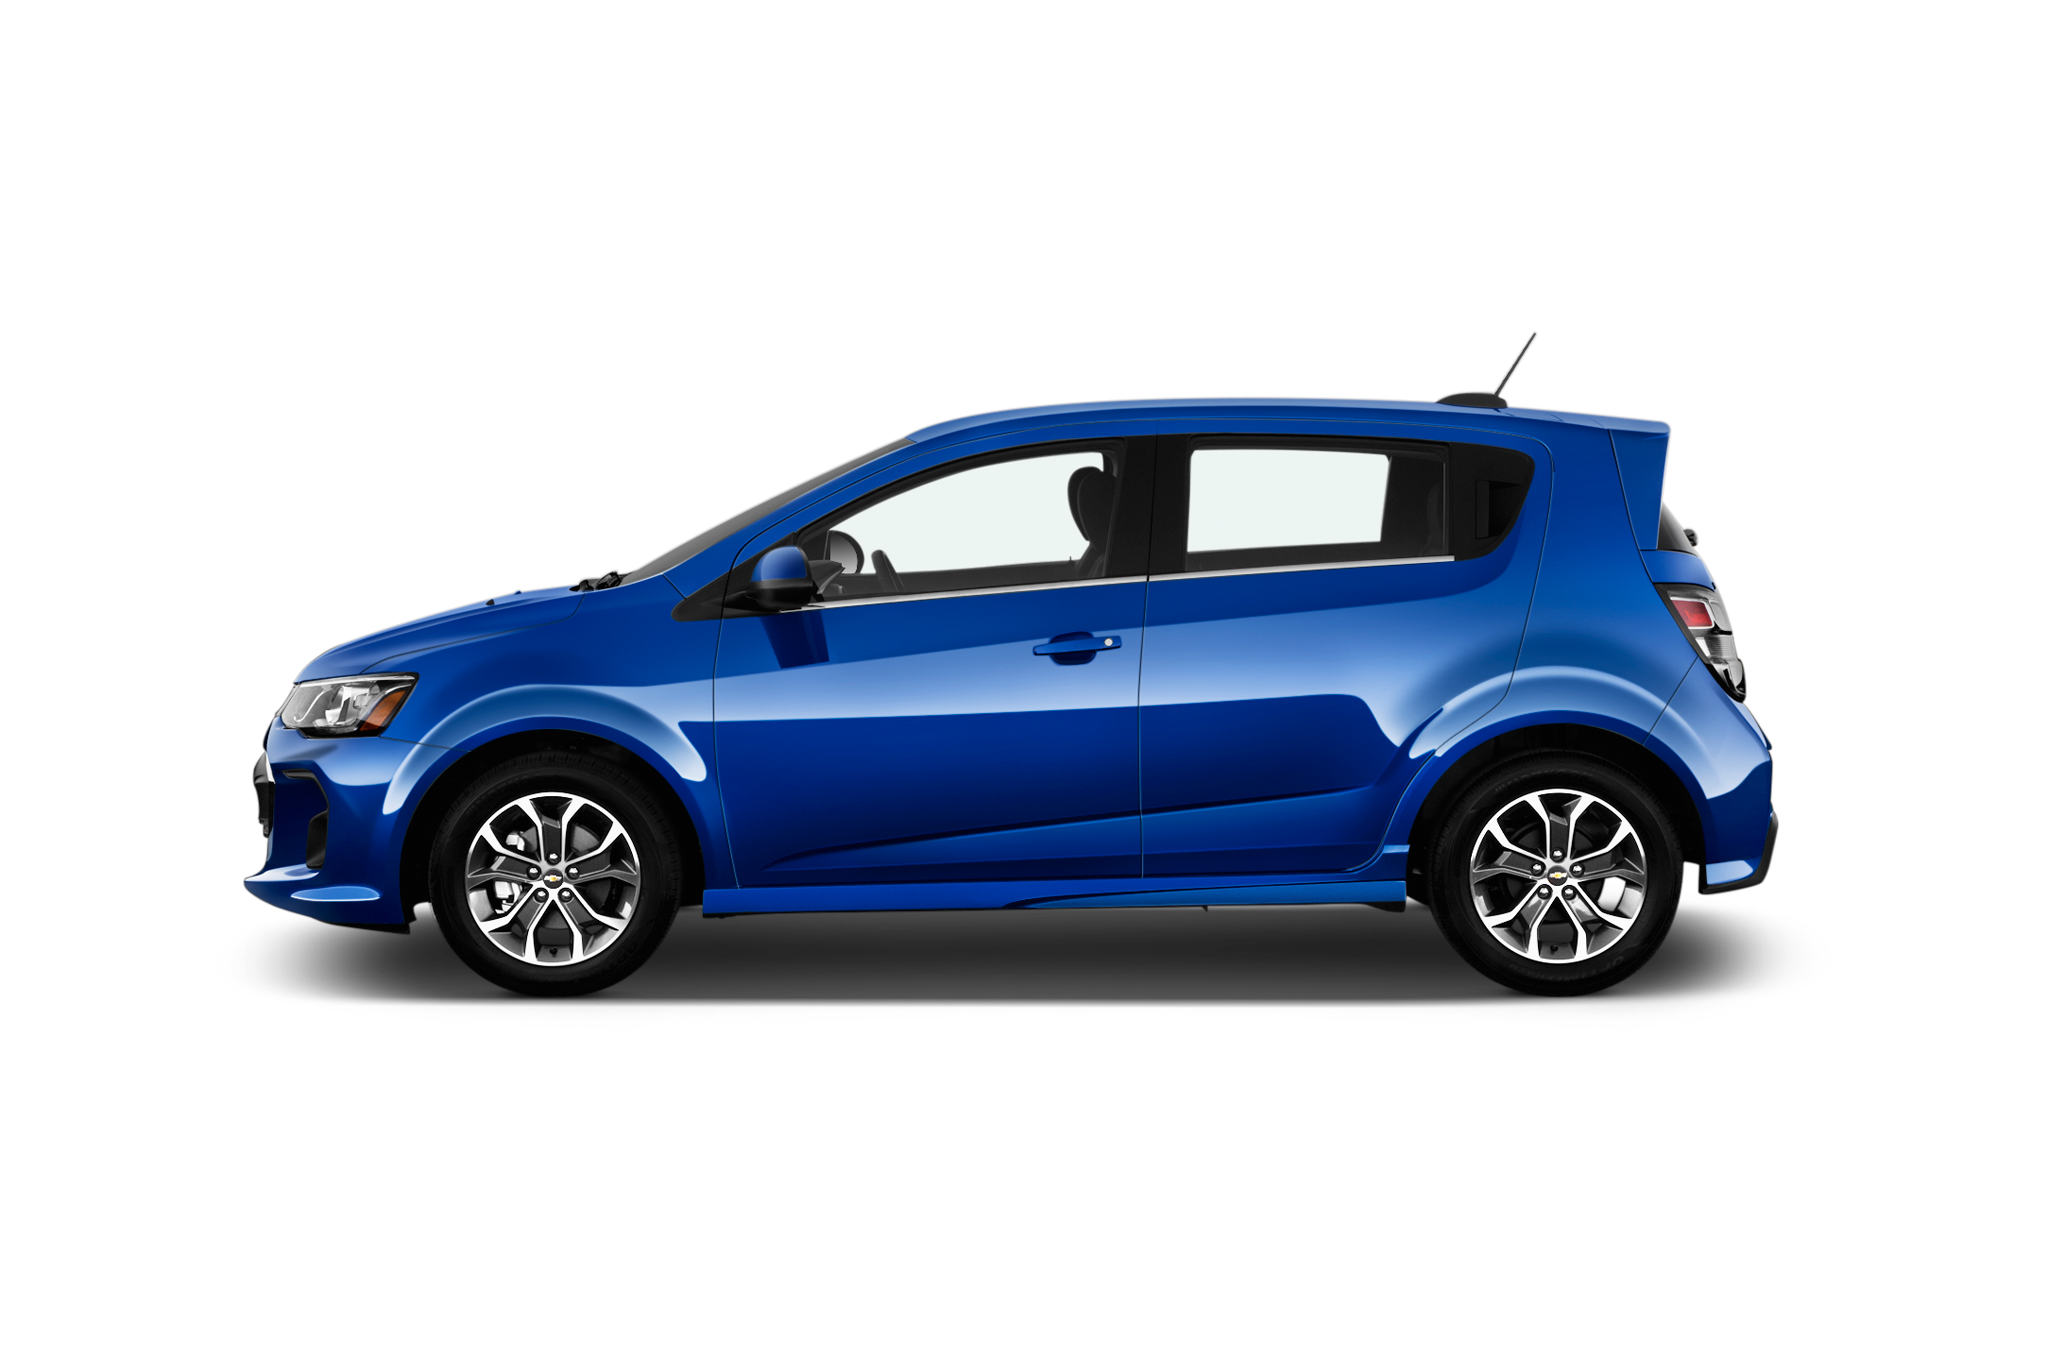 2018 Chevrolet Sonic Price >> 2017 Chevrolet Sonic Hatchback | 2017 - 2018 Best Cars Reviews